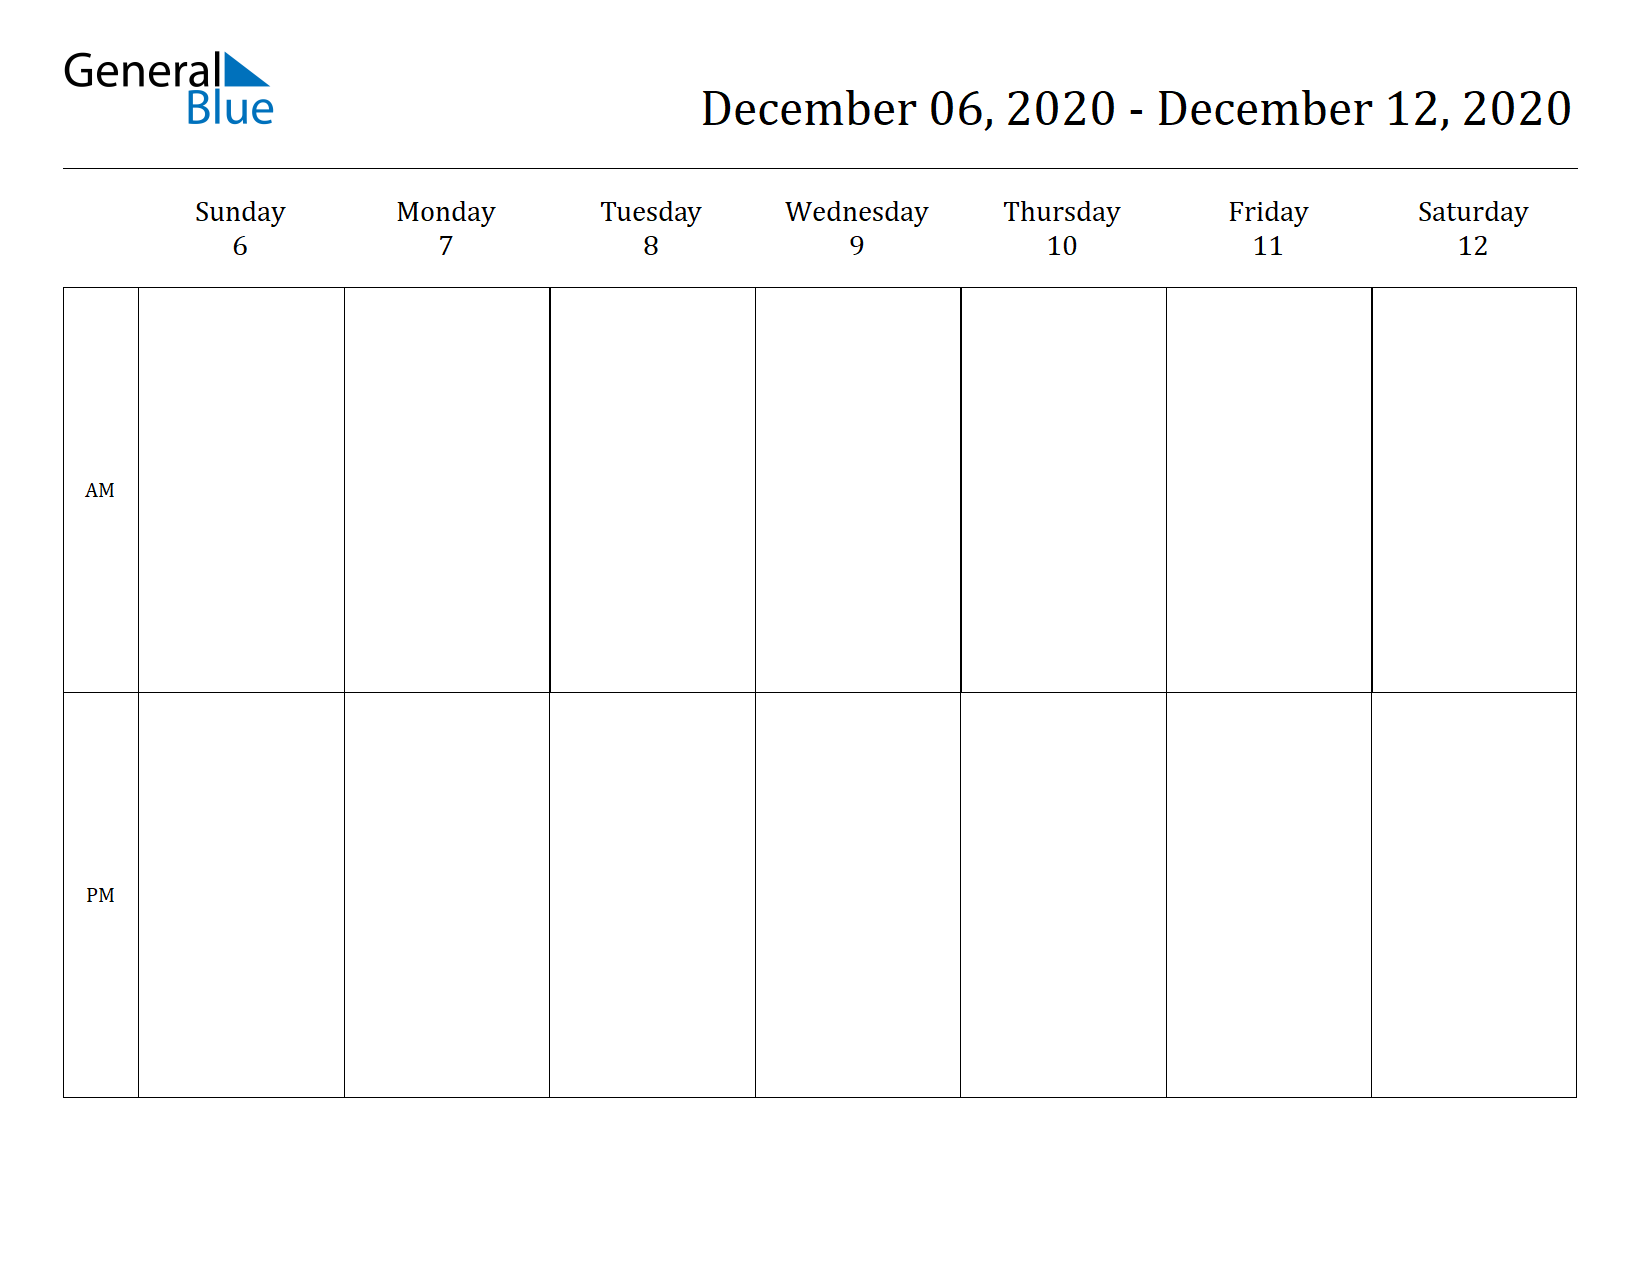 Weekly Calendar for Dec 06, 2020 to Dec 12, 2020